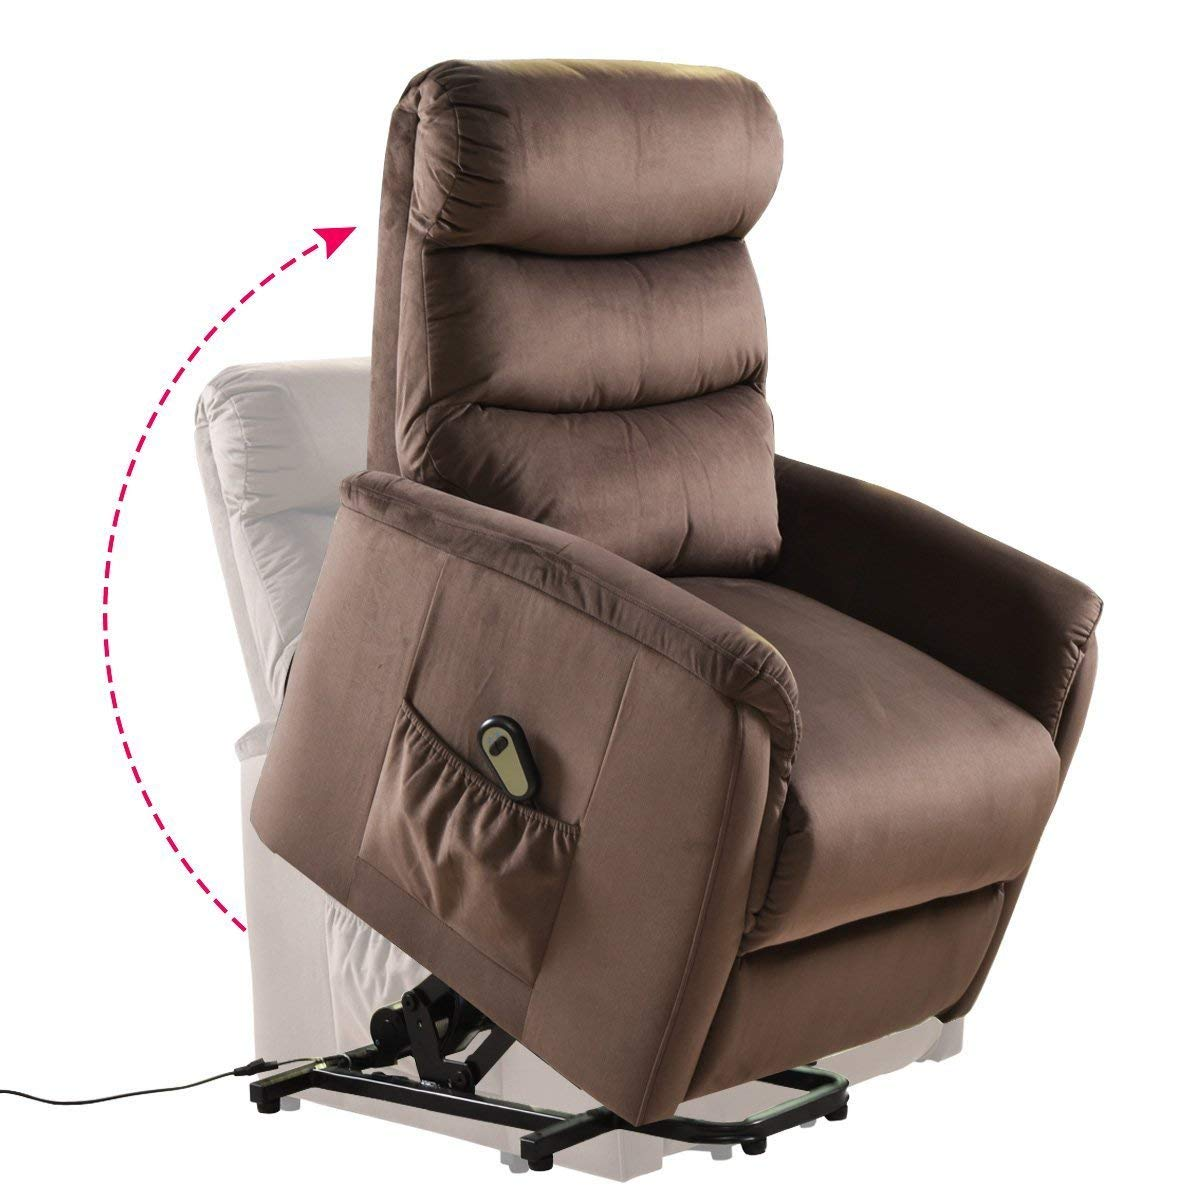 Phenomenal 5 Benefits To Owning A Reclining Chair My Decorative Pdpeps Interior Chair Design Pdpepsorg